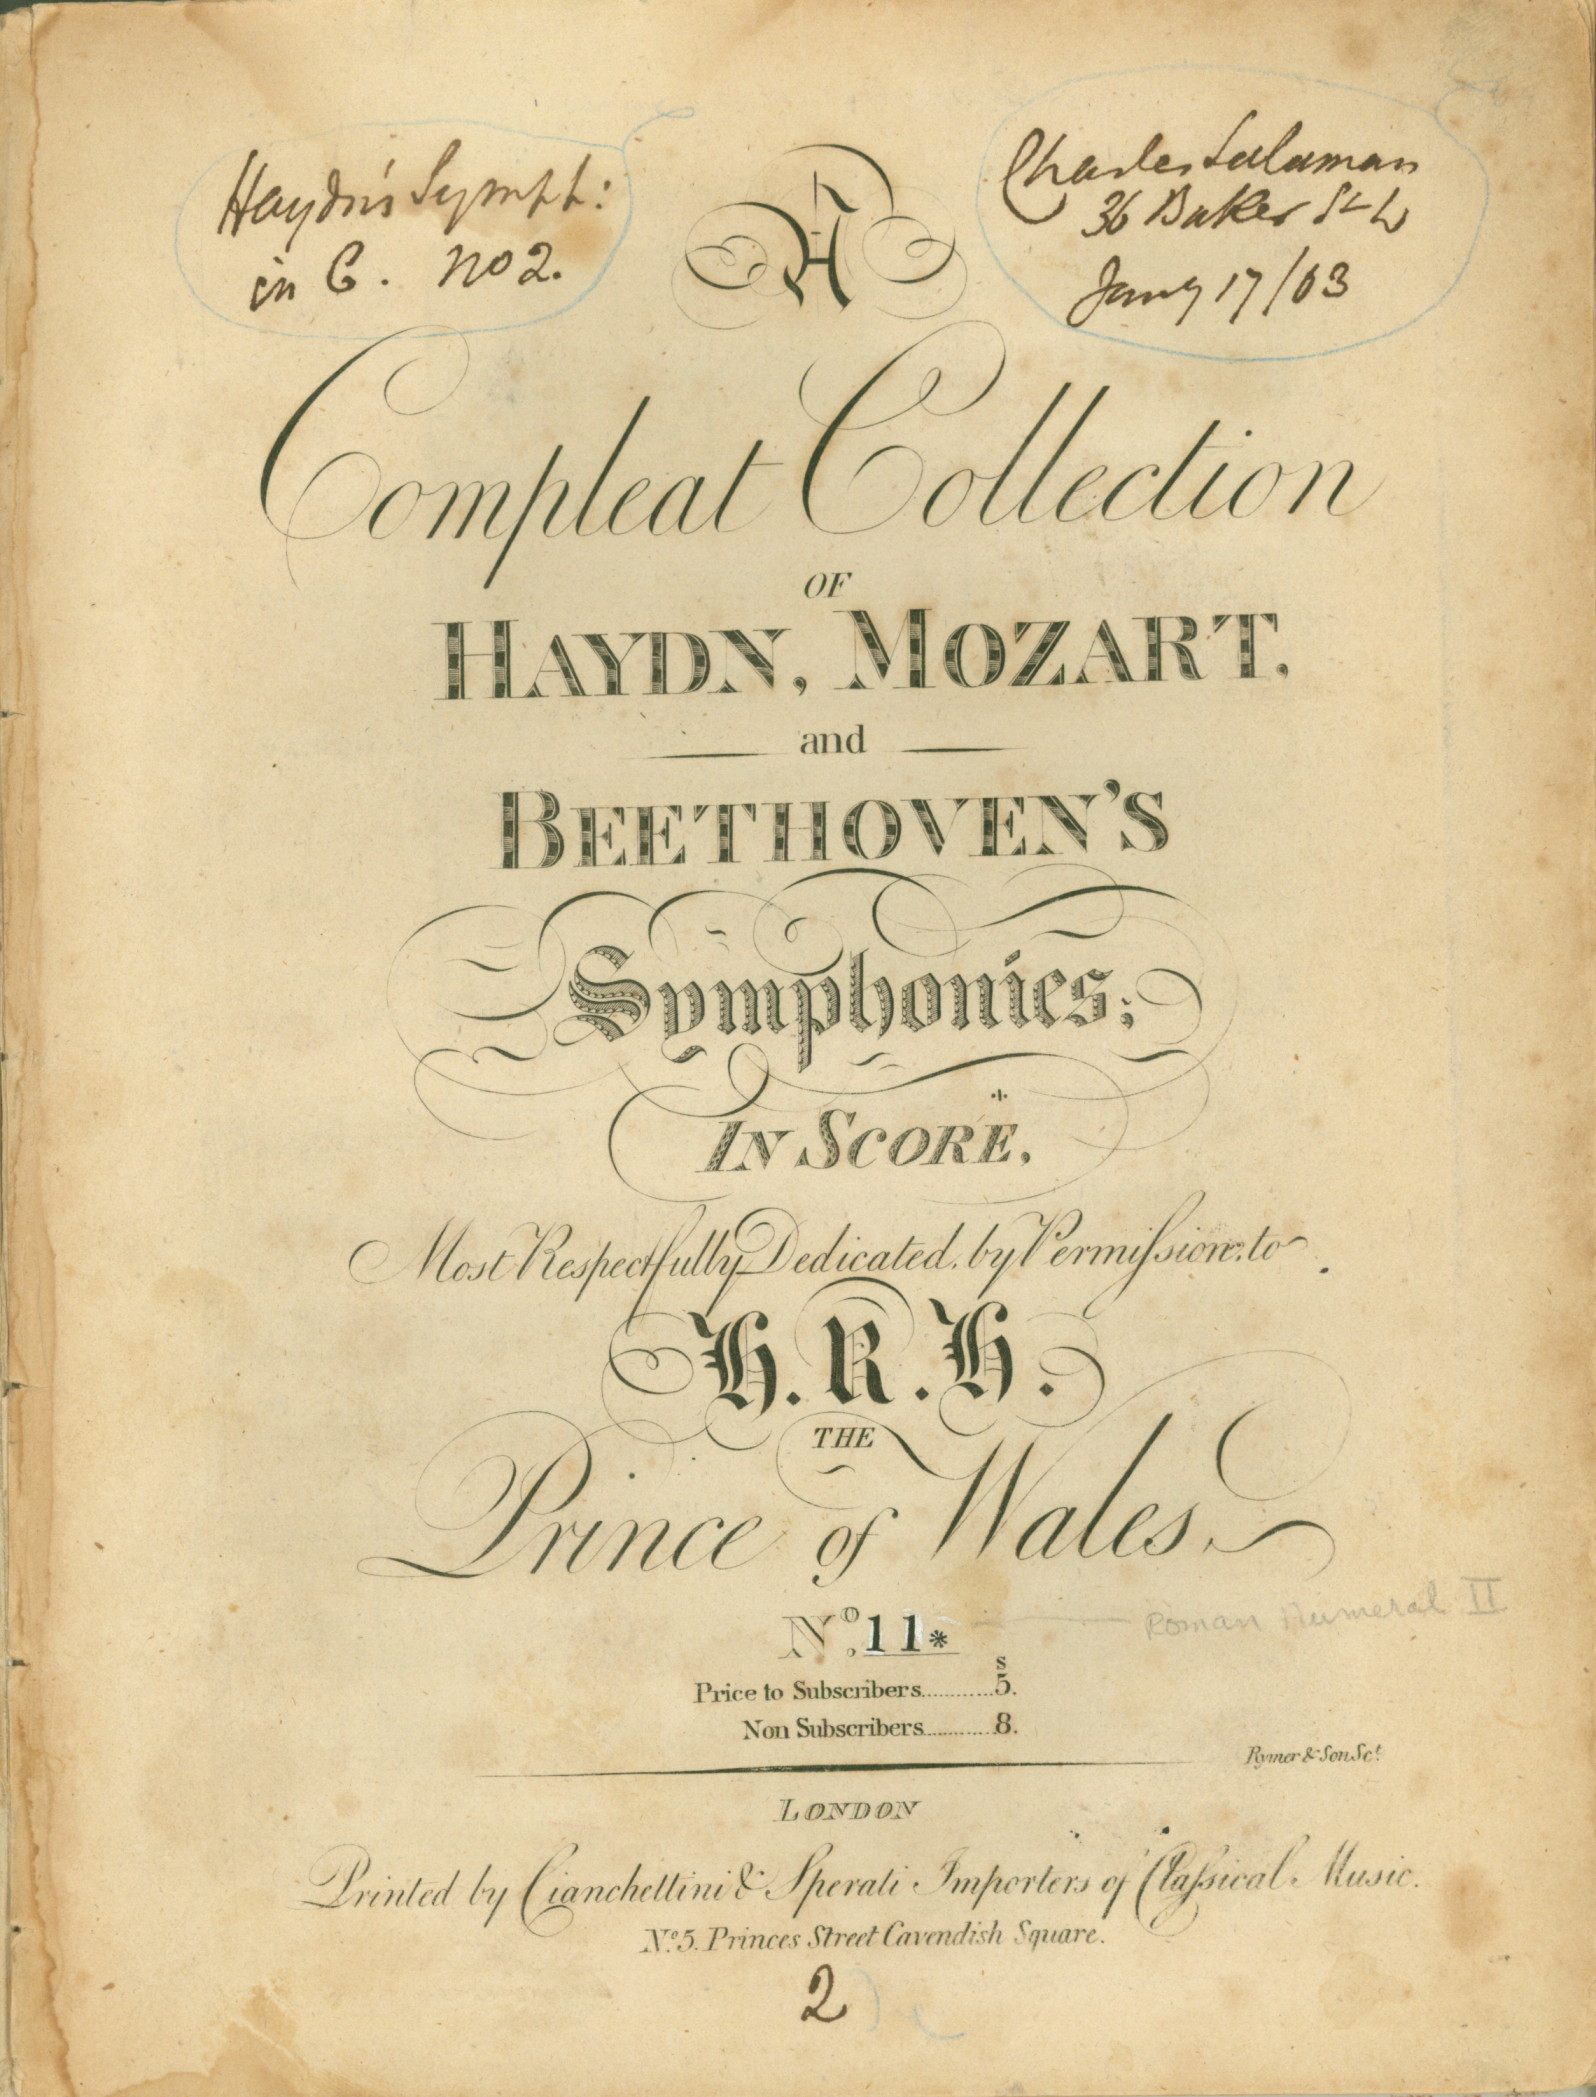 Haydn, Franz Joseph - A Compleat Collection Of Haydn, Mozart And Beethoven's Symphonies... - (4620)